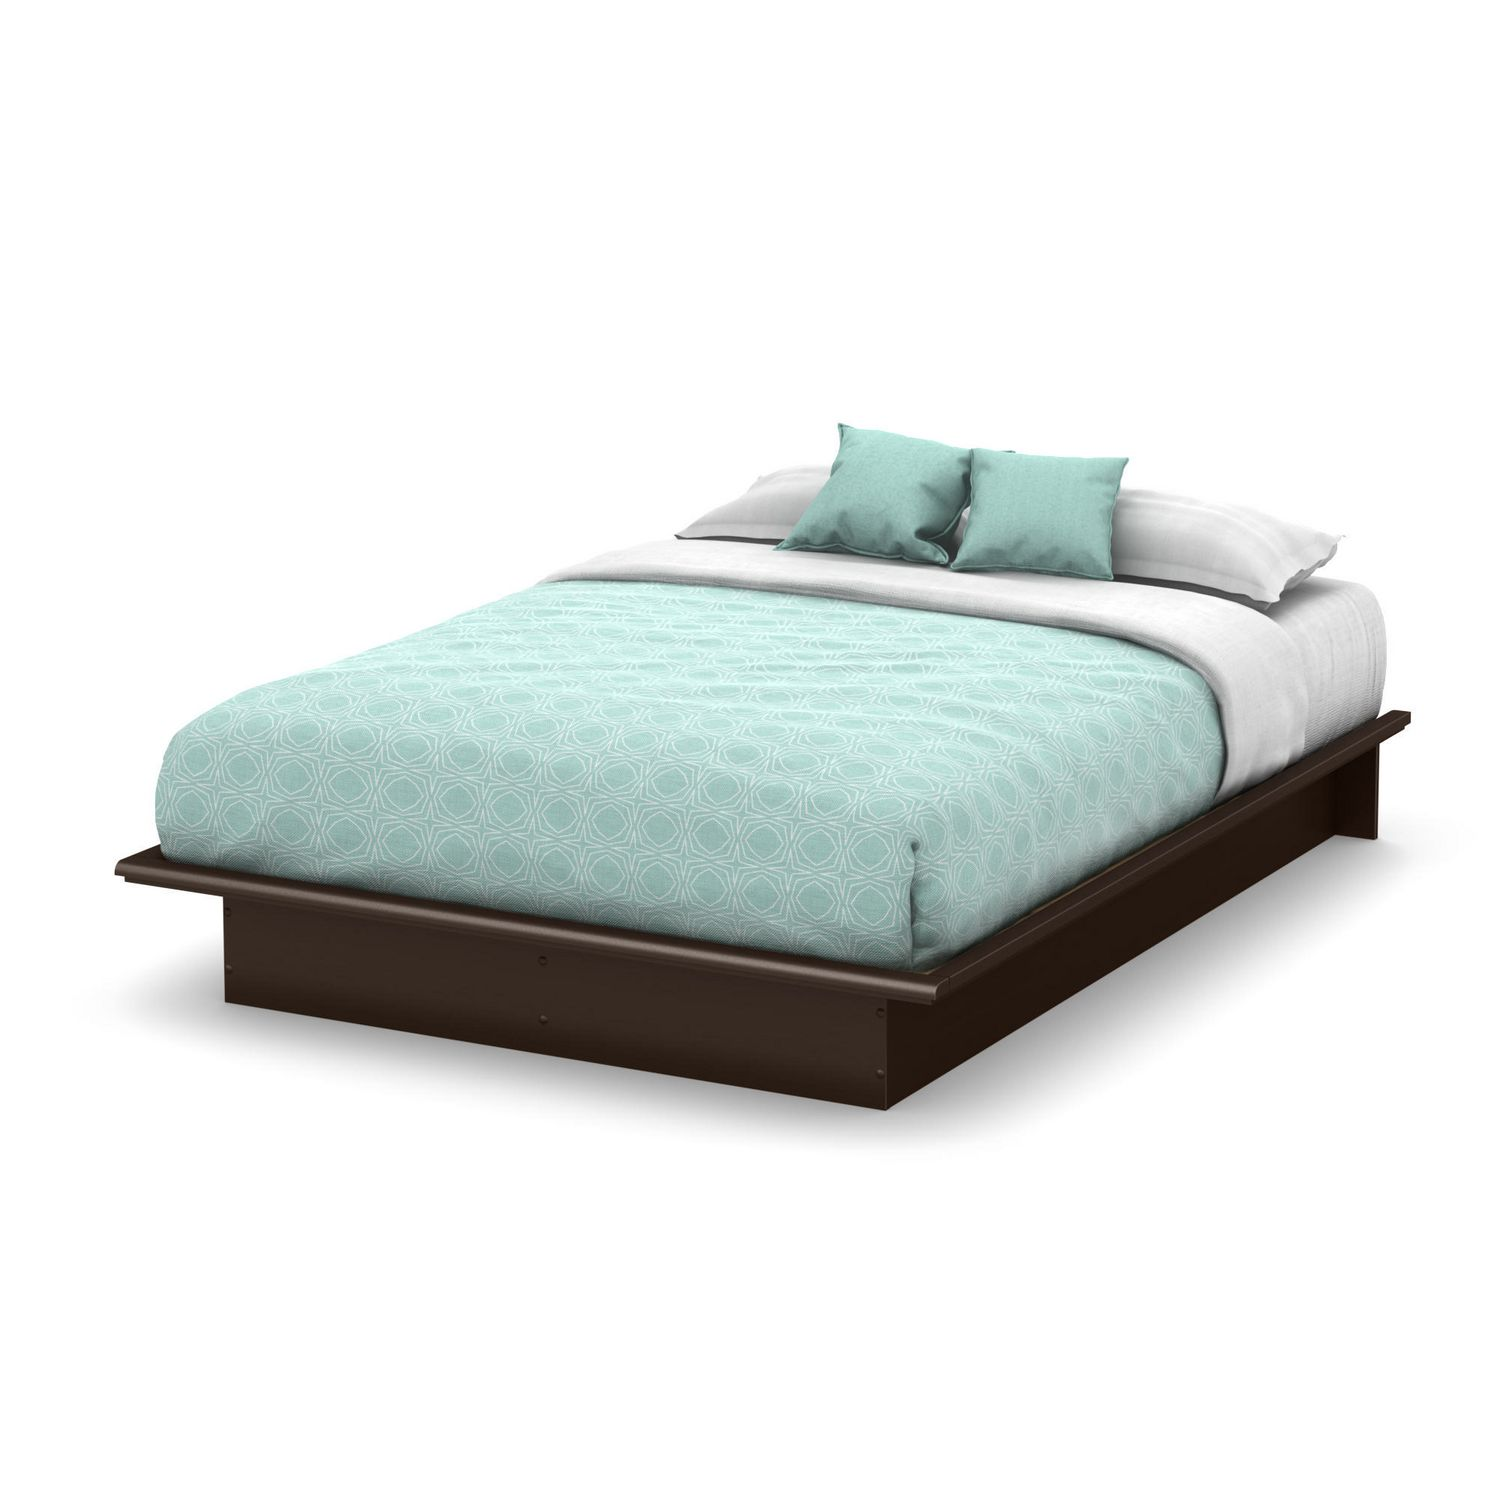 frames beds main tilly bed frame upholstered